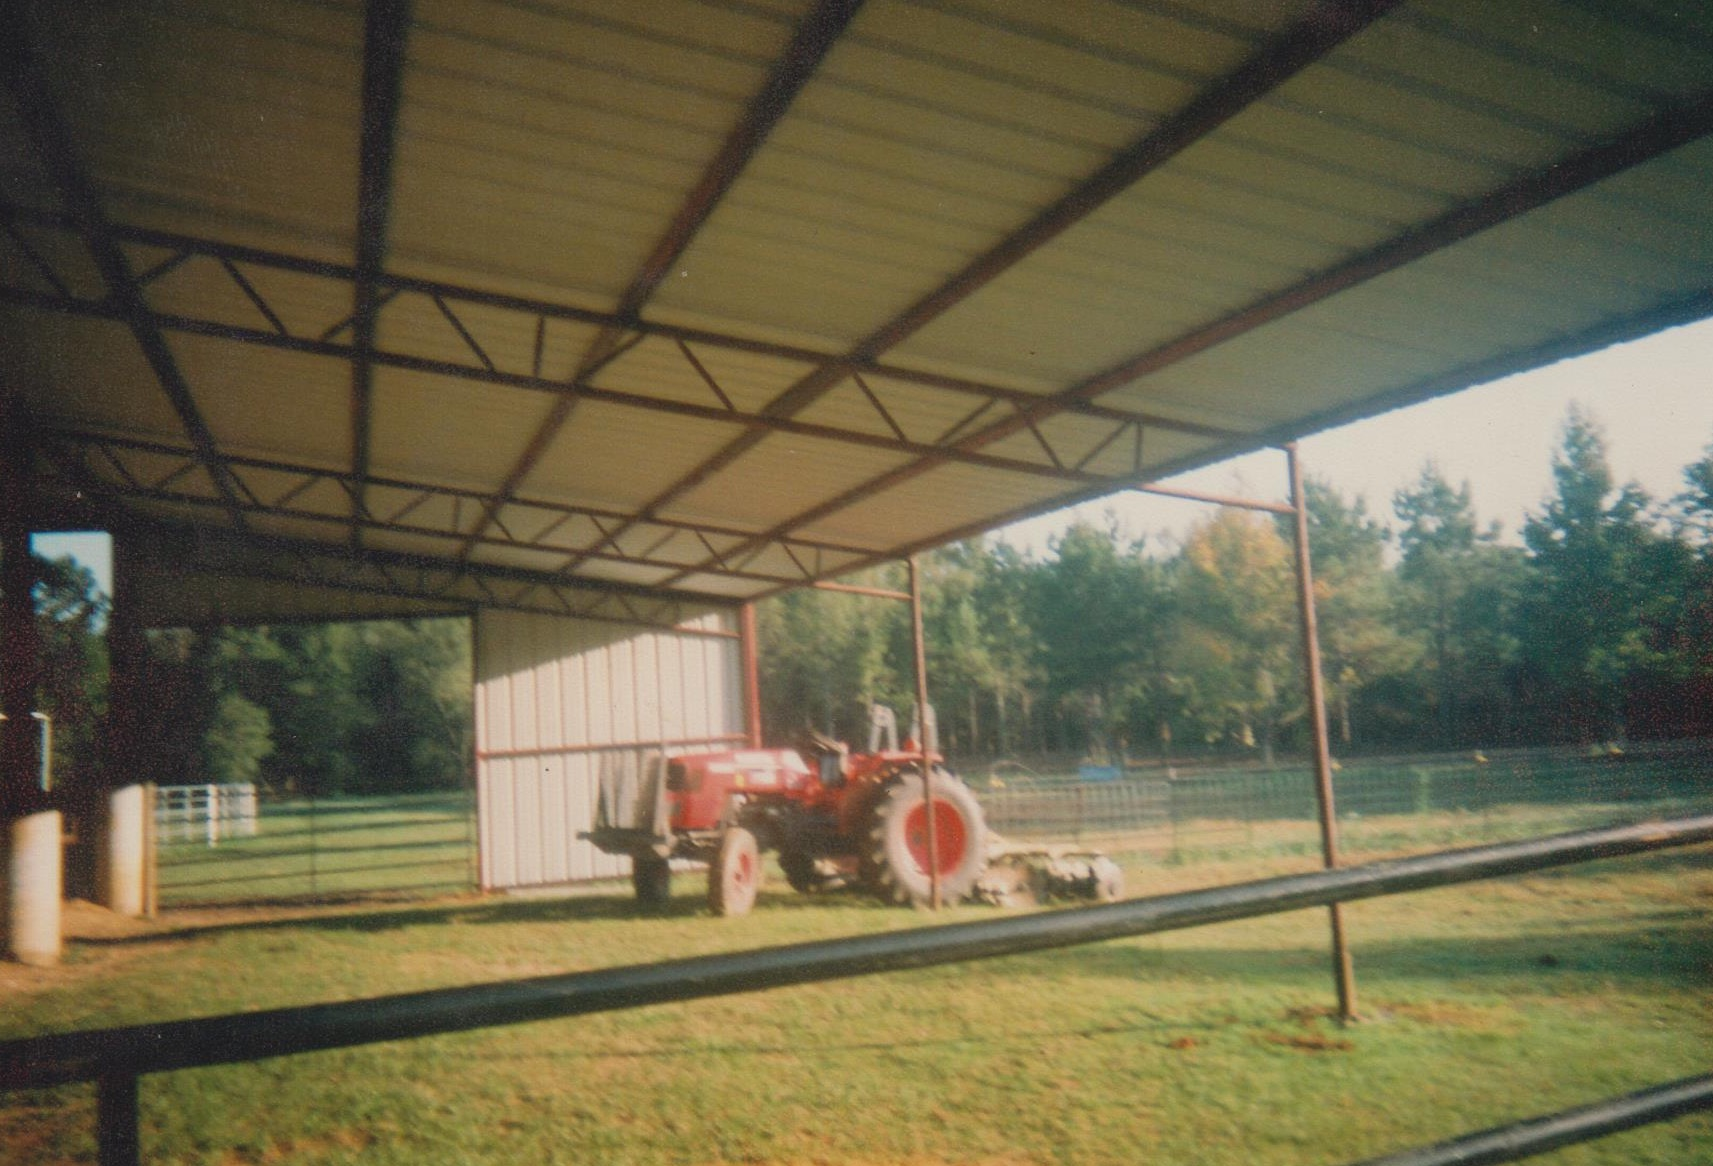 The Pipe Shop Inc Kentwood La 70444 Gt Products Gt Pole Barns